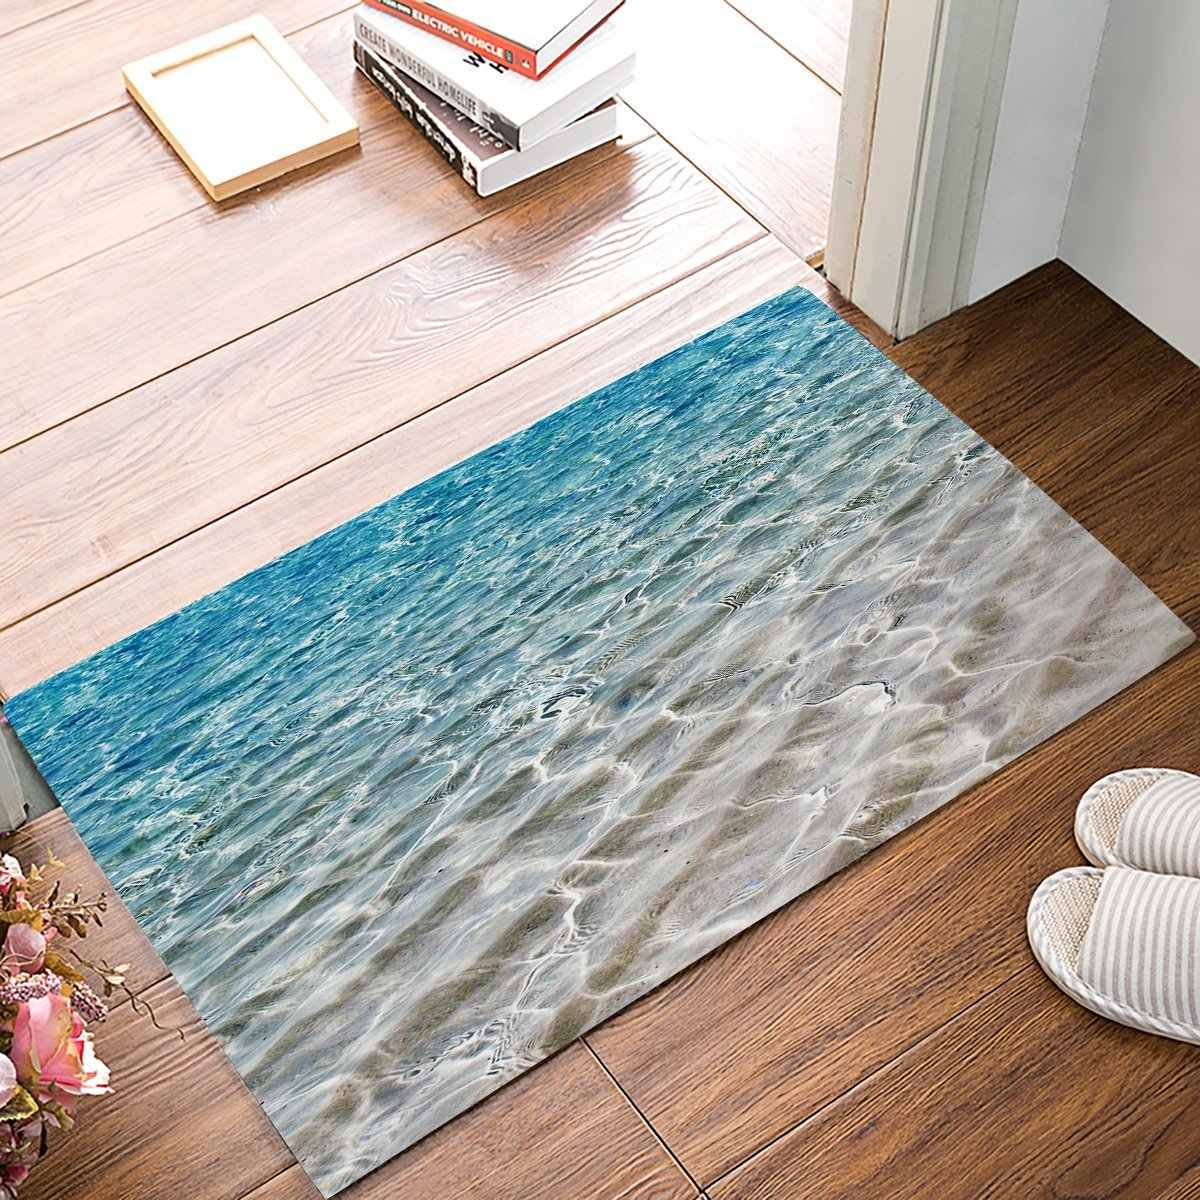 Blue Rippled Sandy Beach Sea Door Mats Kitchen Floor Bath Entryway Rug Mat Absorbent Indoor Bathroom Rubber Non Slip